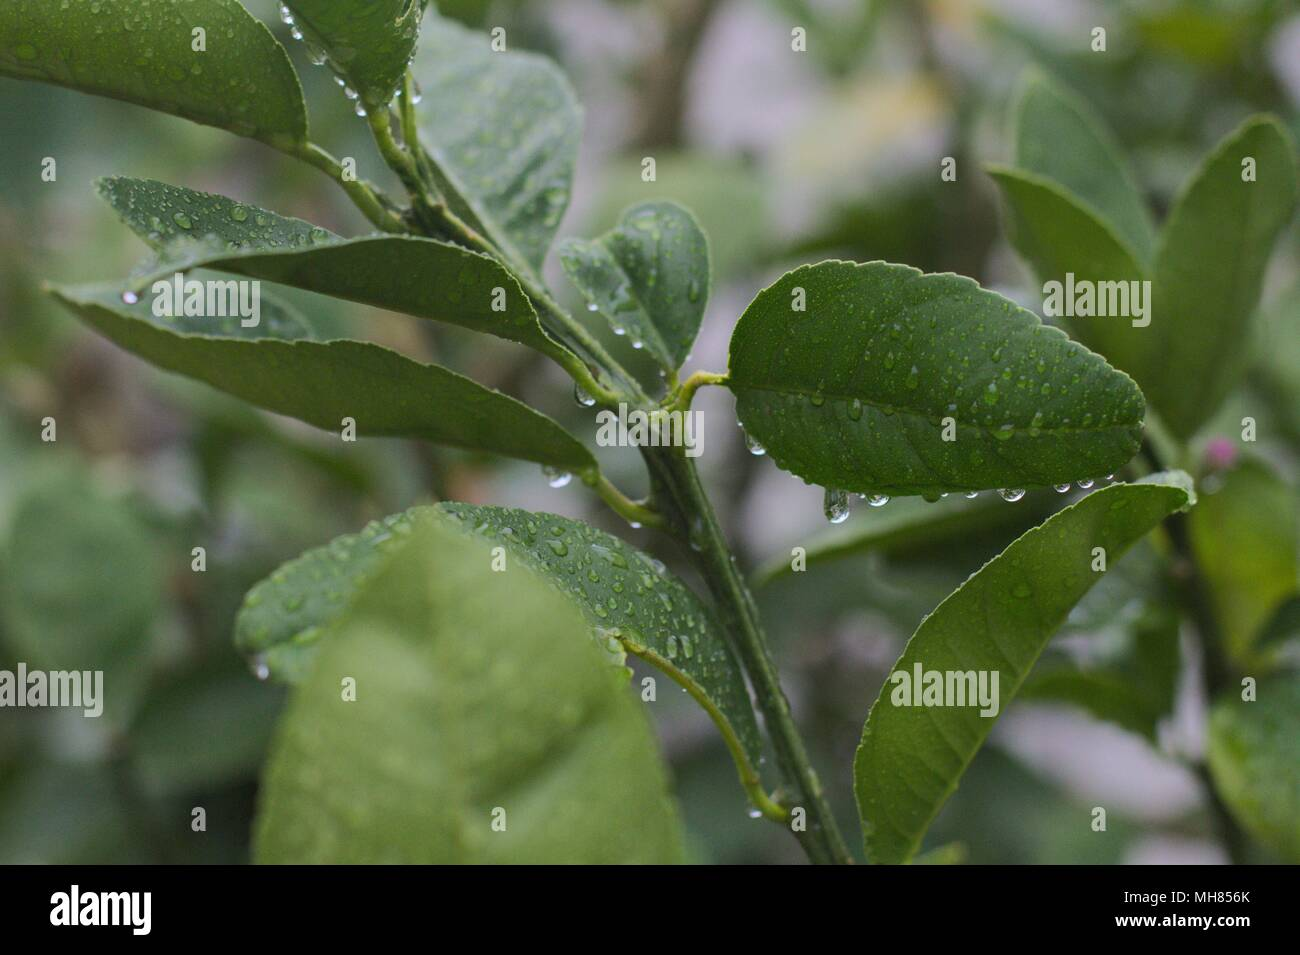 Leafy branch of a lemon citrus tree, with water droplets after a rainstorm. Stock Photo